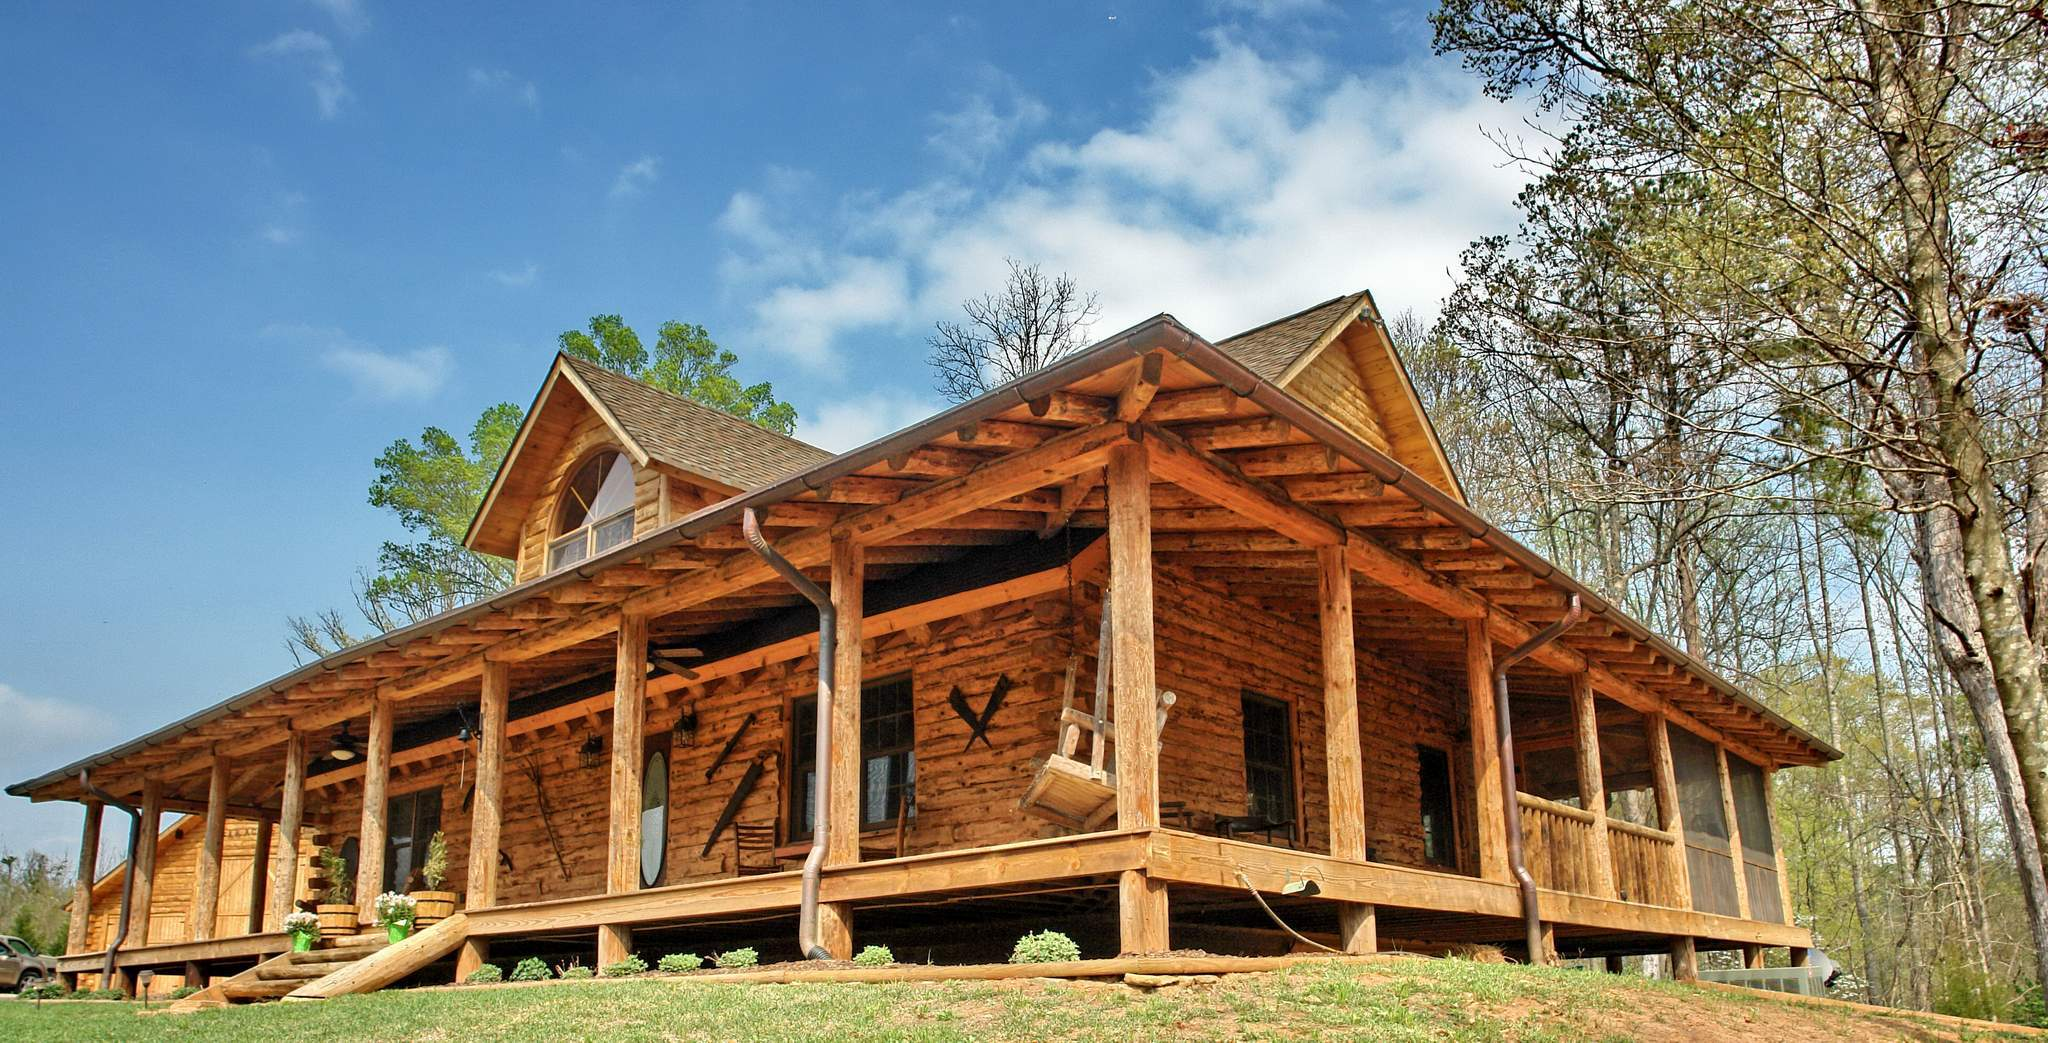 Model home country rustic dream home Country log home